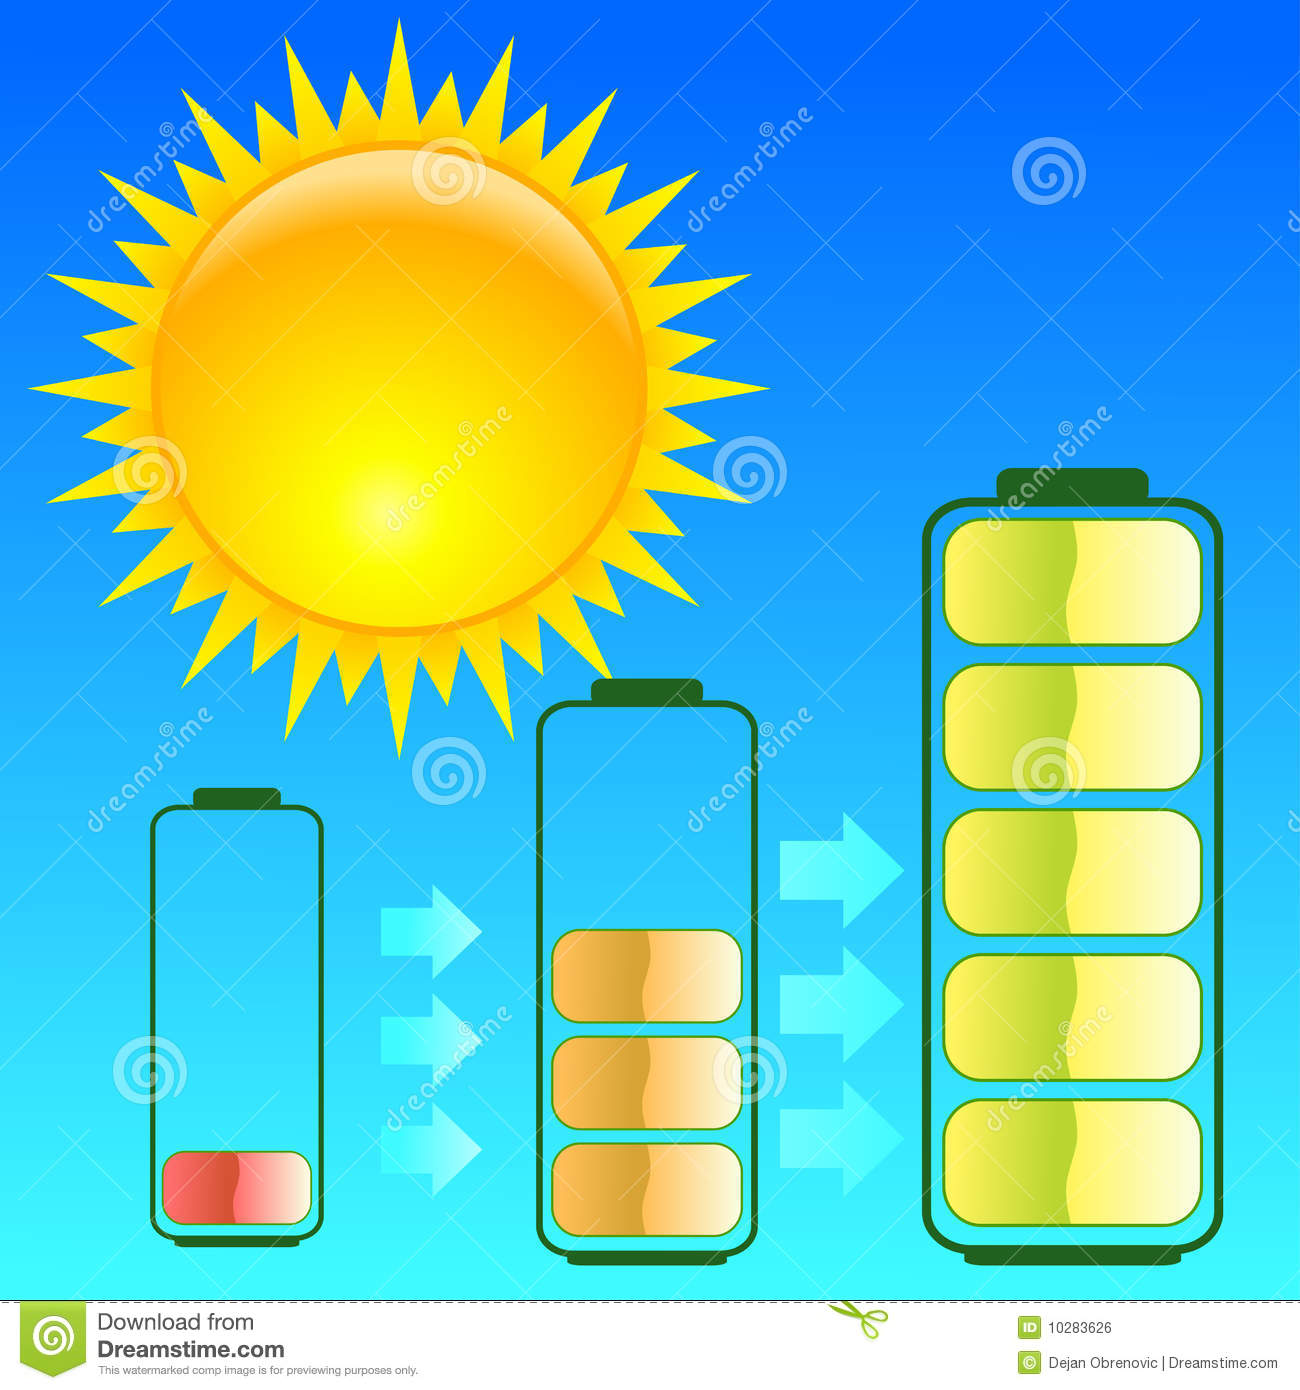 Royalty Free Stock Image Sun Energy Image10283626 additionally Sadef Anchored Solar Structures further Cdtecds Thin Film In Solar Cell as well Newindex likewise Solar Thesis Paper. on solar panel diagram